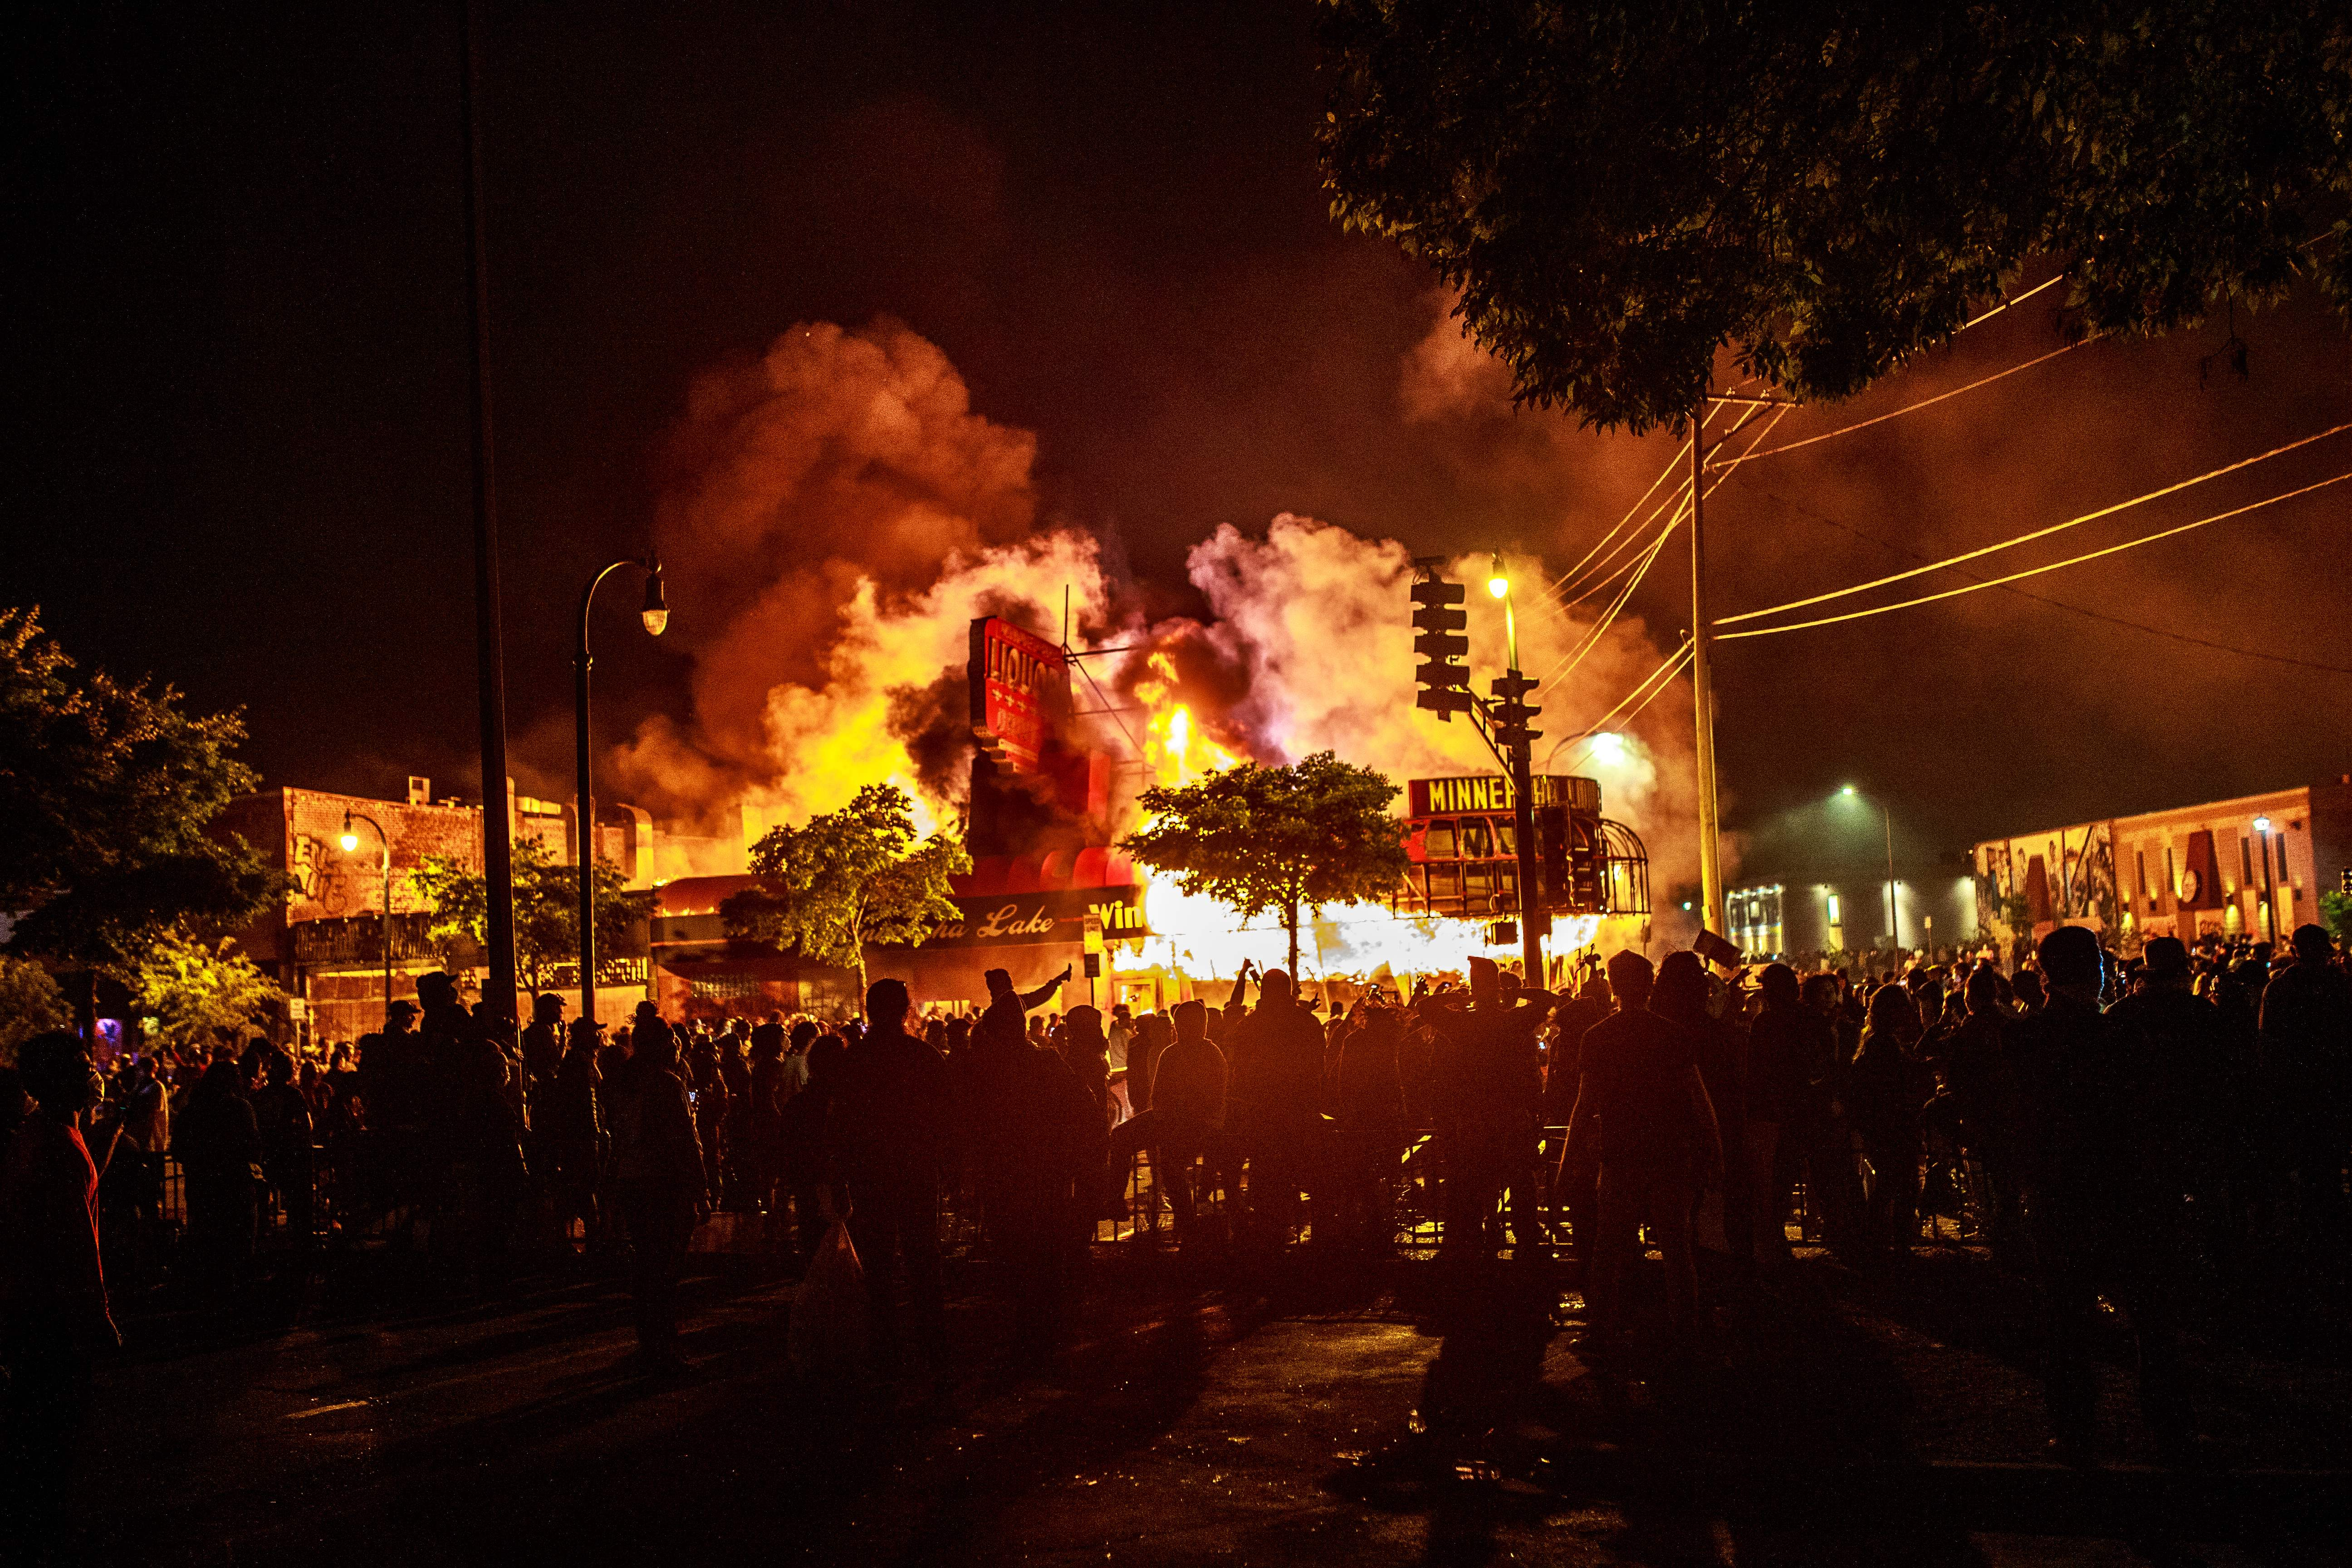 Protesters gather around a liquor store in flames near the Third Police Precinct on May 28, 2020 in Minneapolis, Minnesota, during a protest over the death of George Floyd, an unarmed black man, who died after a police officer kneeled on his neck for several minutes. - A police precinct in Minnesota went up in flames late on May 28 in a third day of demonstrations as the so-called Twin Cities of Minneapolis and St. Paul seethed over the shocking police killing of a handcuffed black man. The precinct, which police had abandoned, burned after a group of protesters pushed through barriers around the building, breaking windows and chanting slogans. A much larger crowd demonstrated as the building went up in flames. (Photo by Kerem Yucel/AFP via Getty Images)